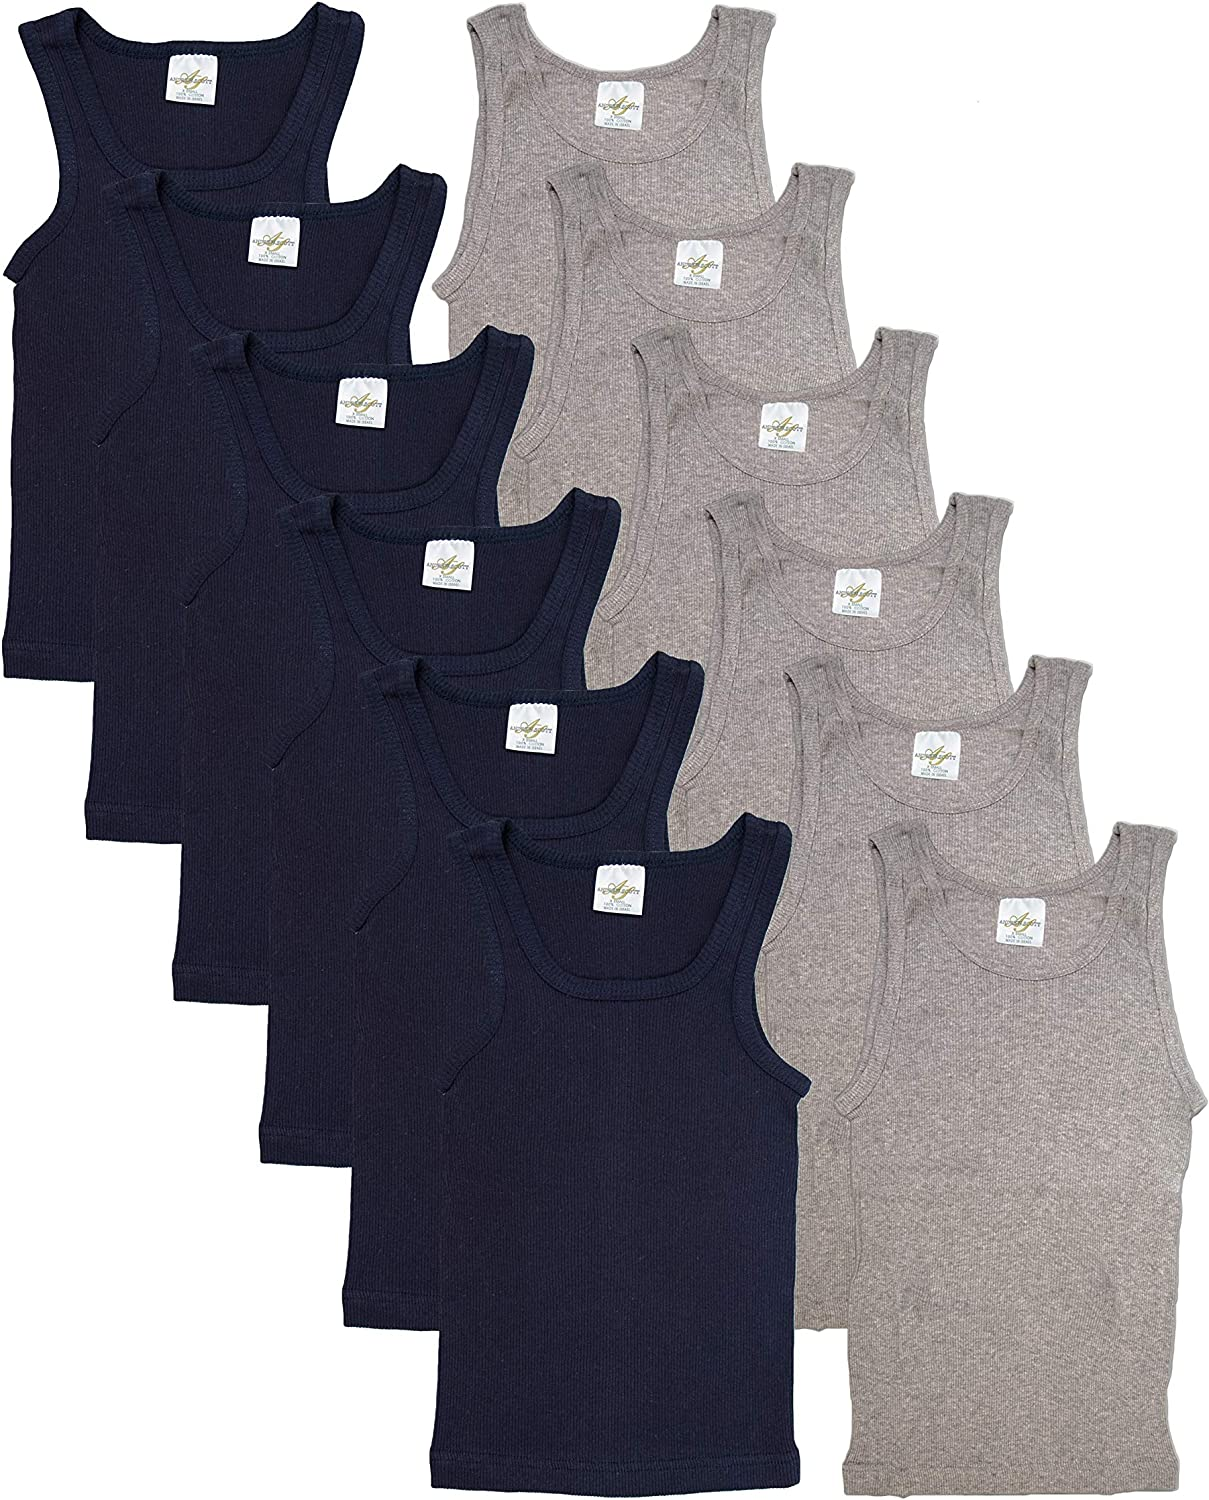 Andrew Scott Basics Boys 10 Pack Color A-Shirt Sport Tank Top Undershirts